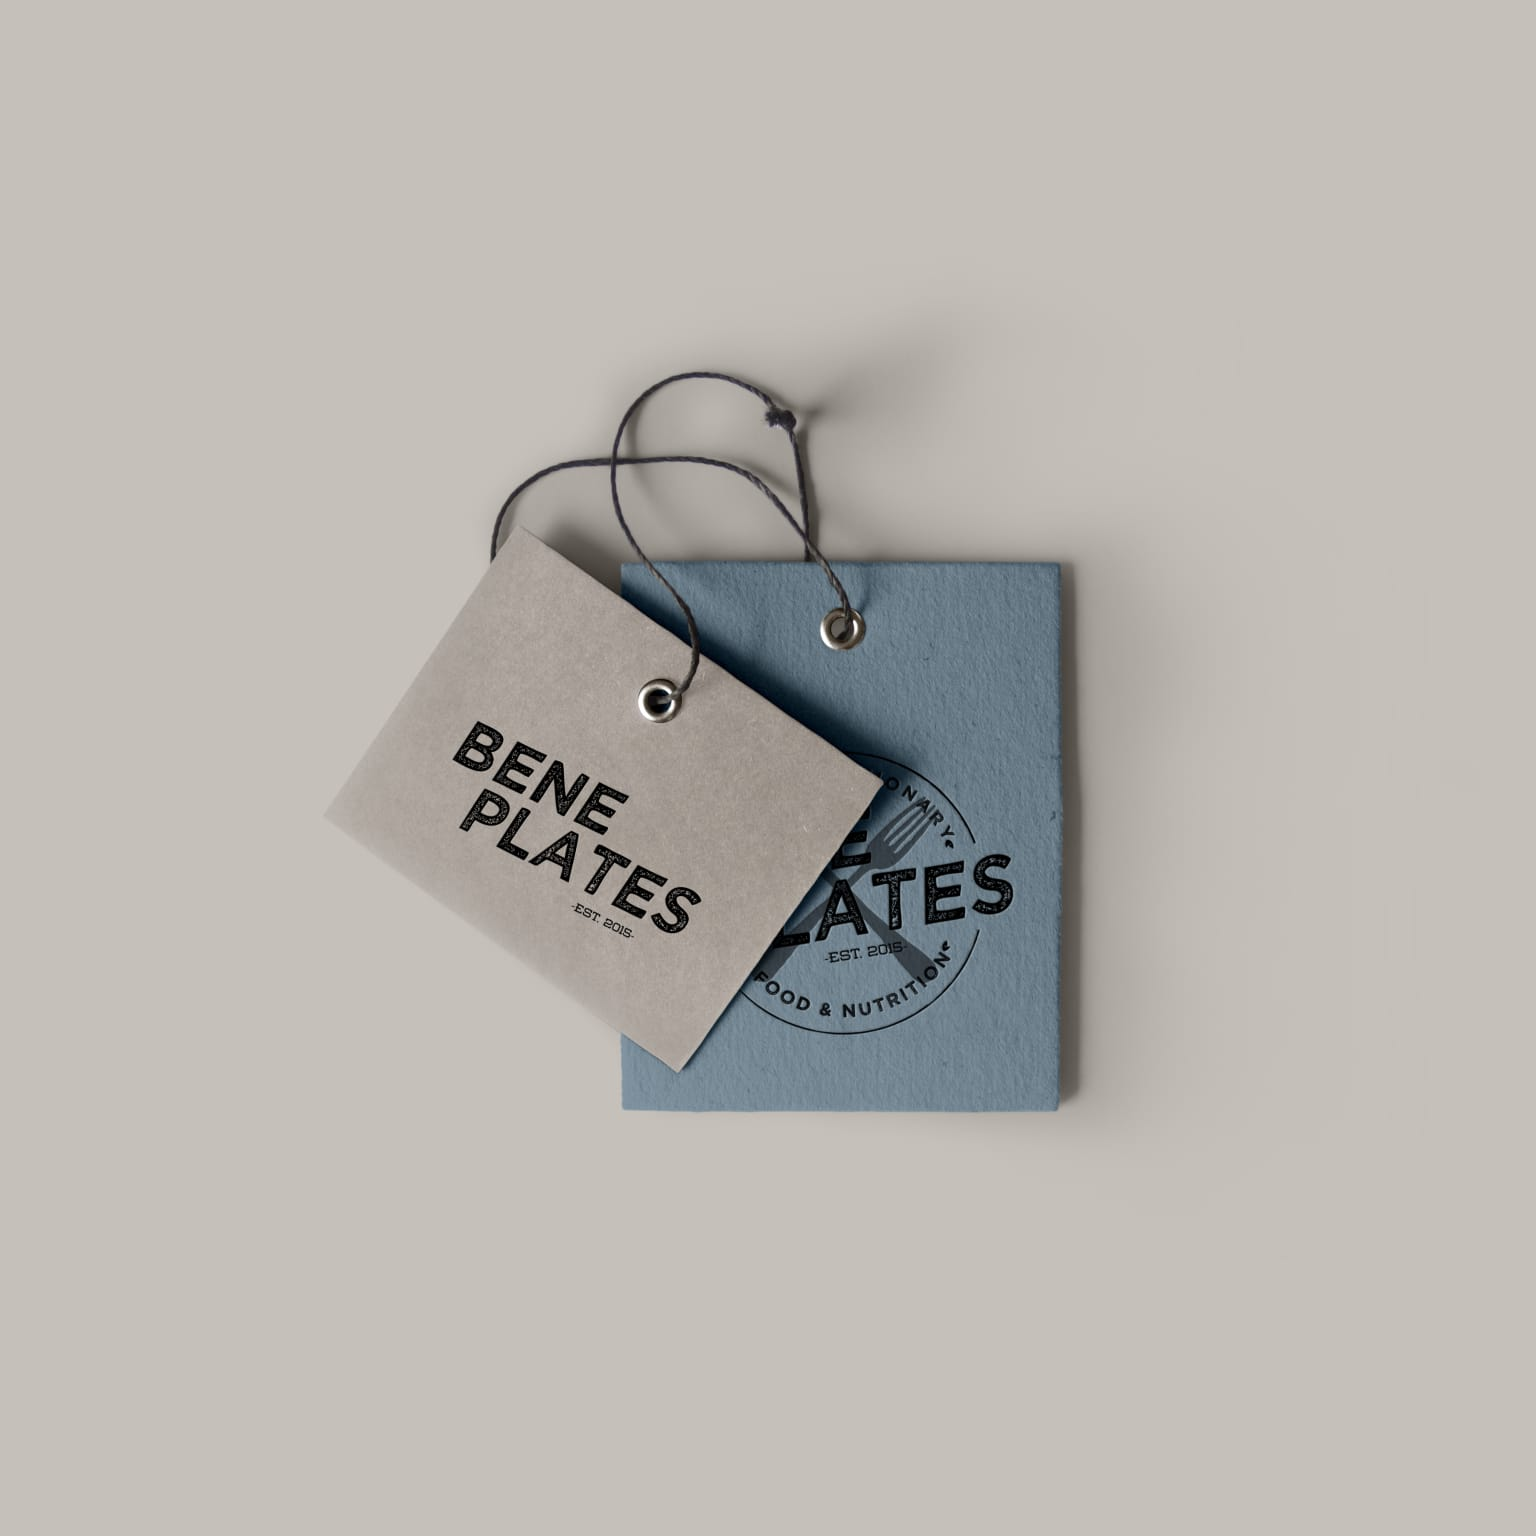 Brand Development: Bene Plates Food + Nutrition